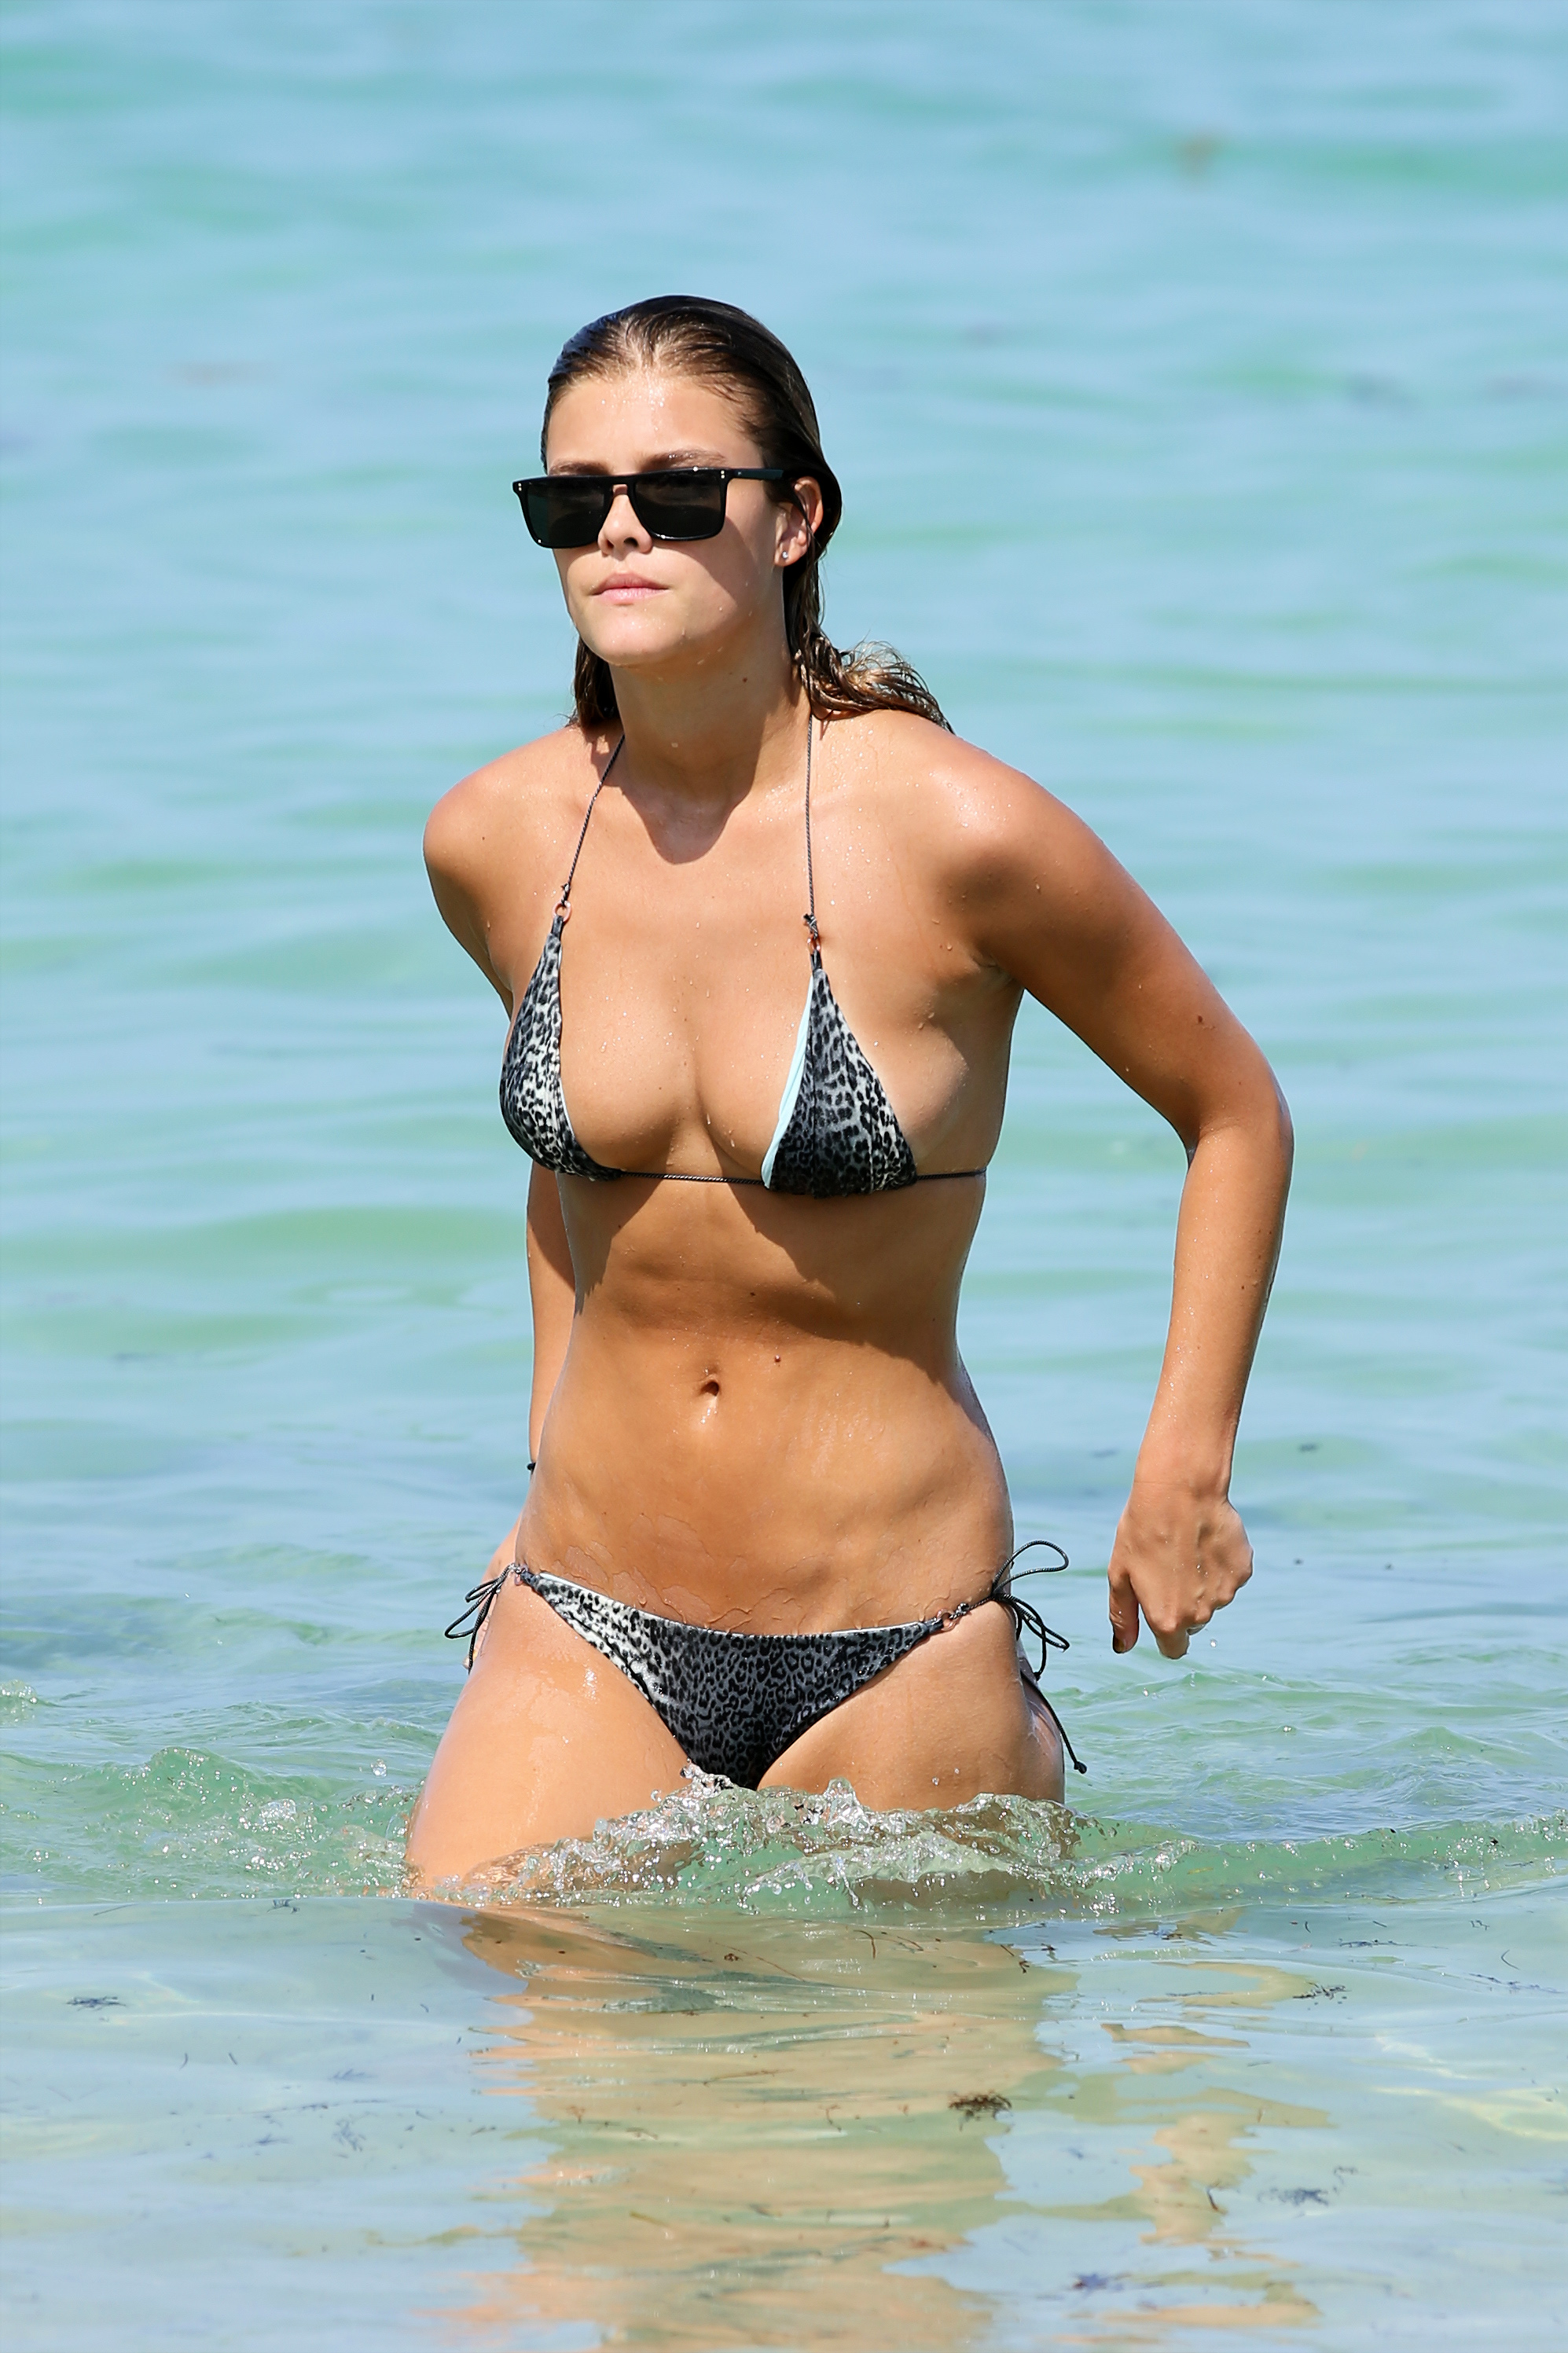 At The Beach Miami July 19 2014